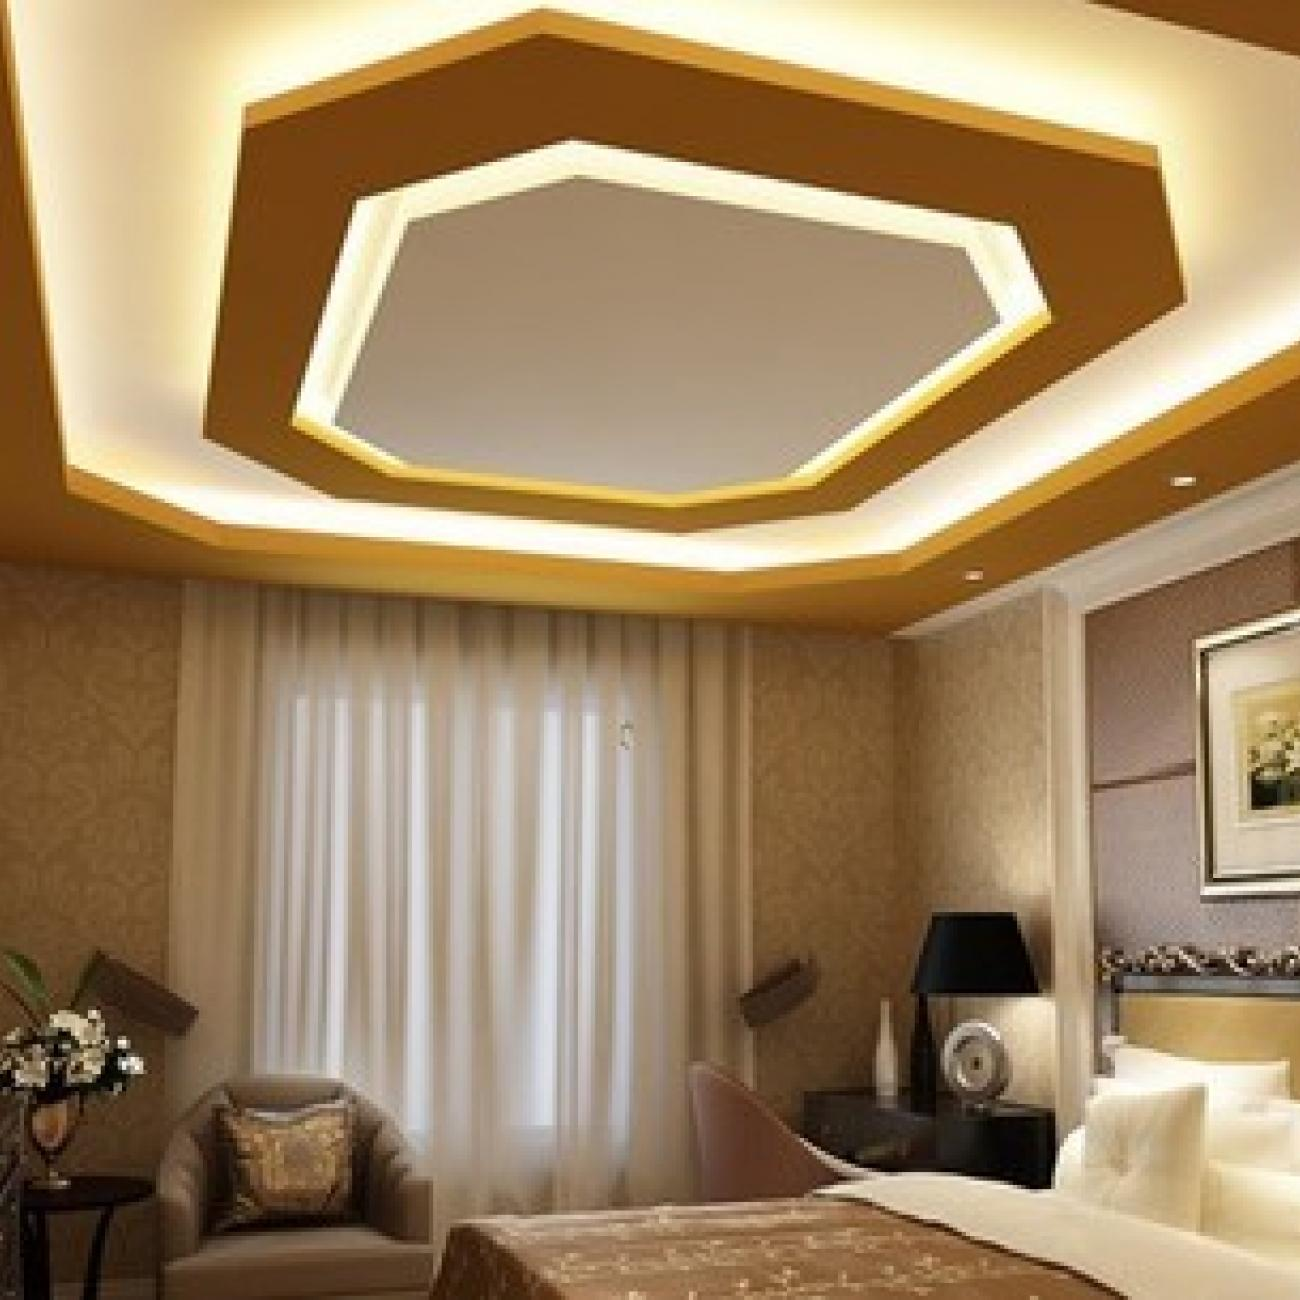 product-500x500_(11)